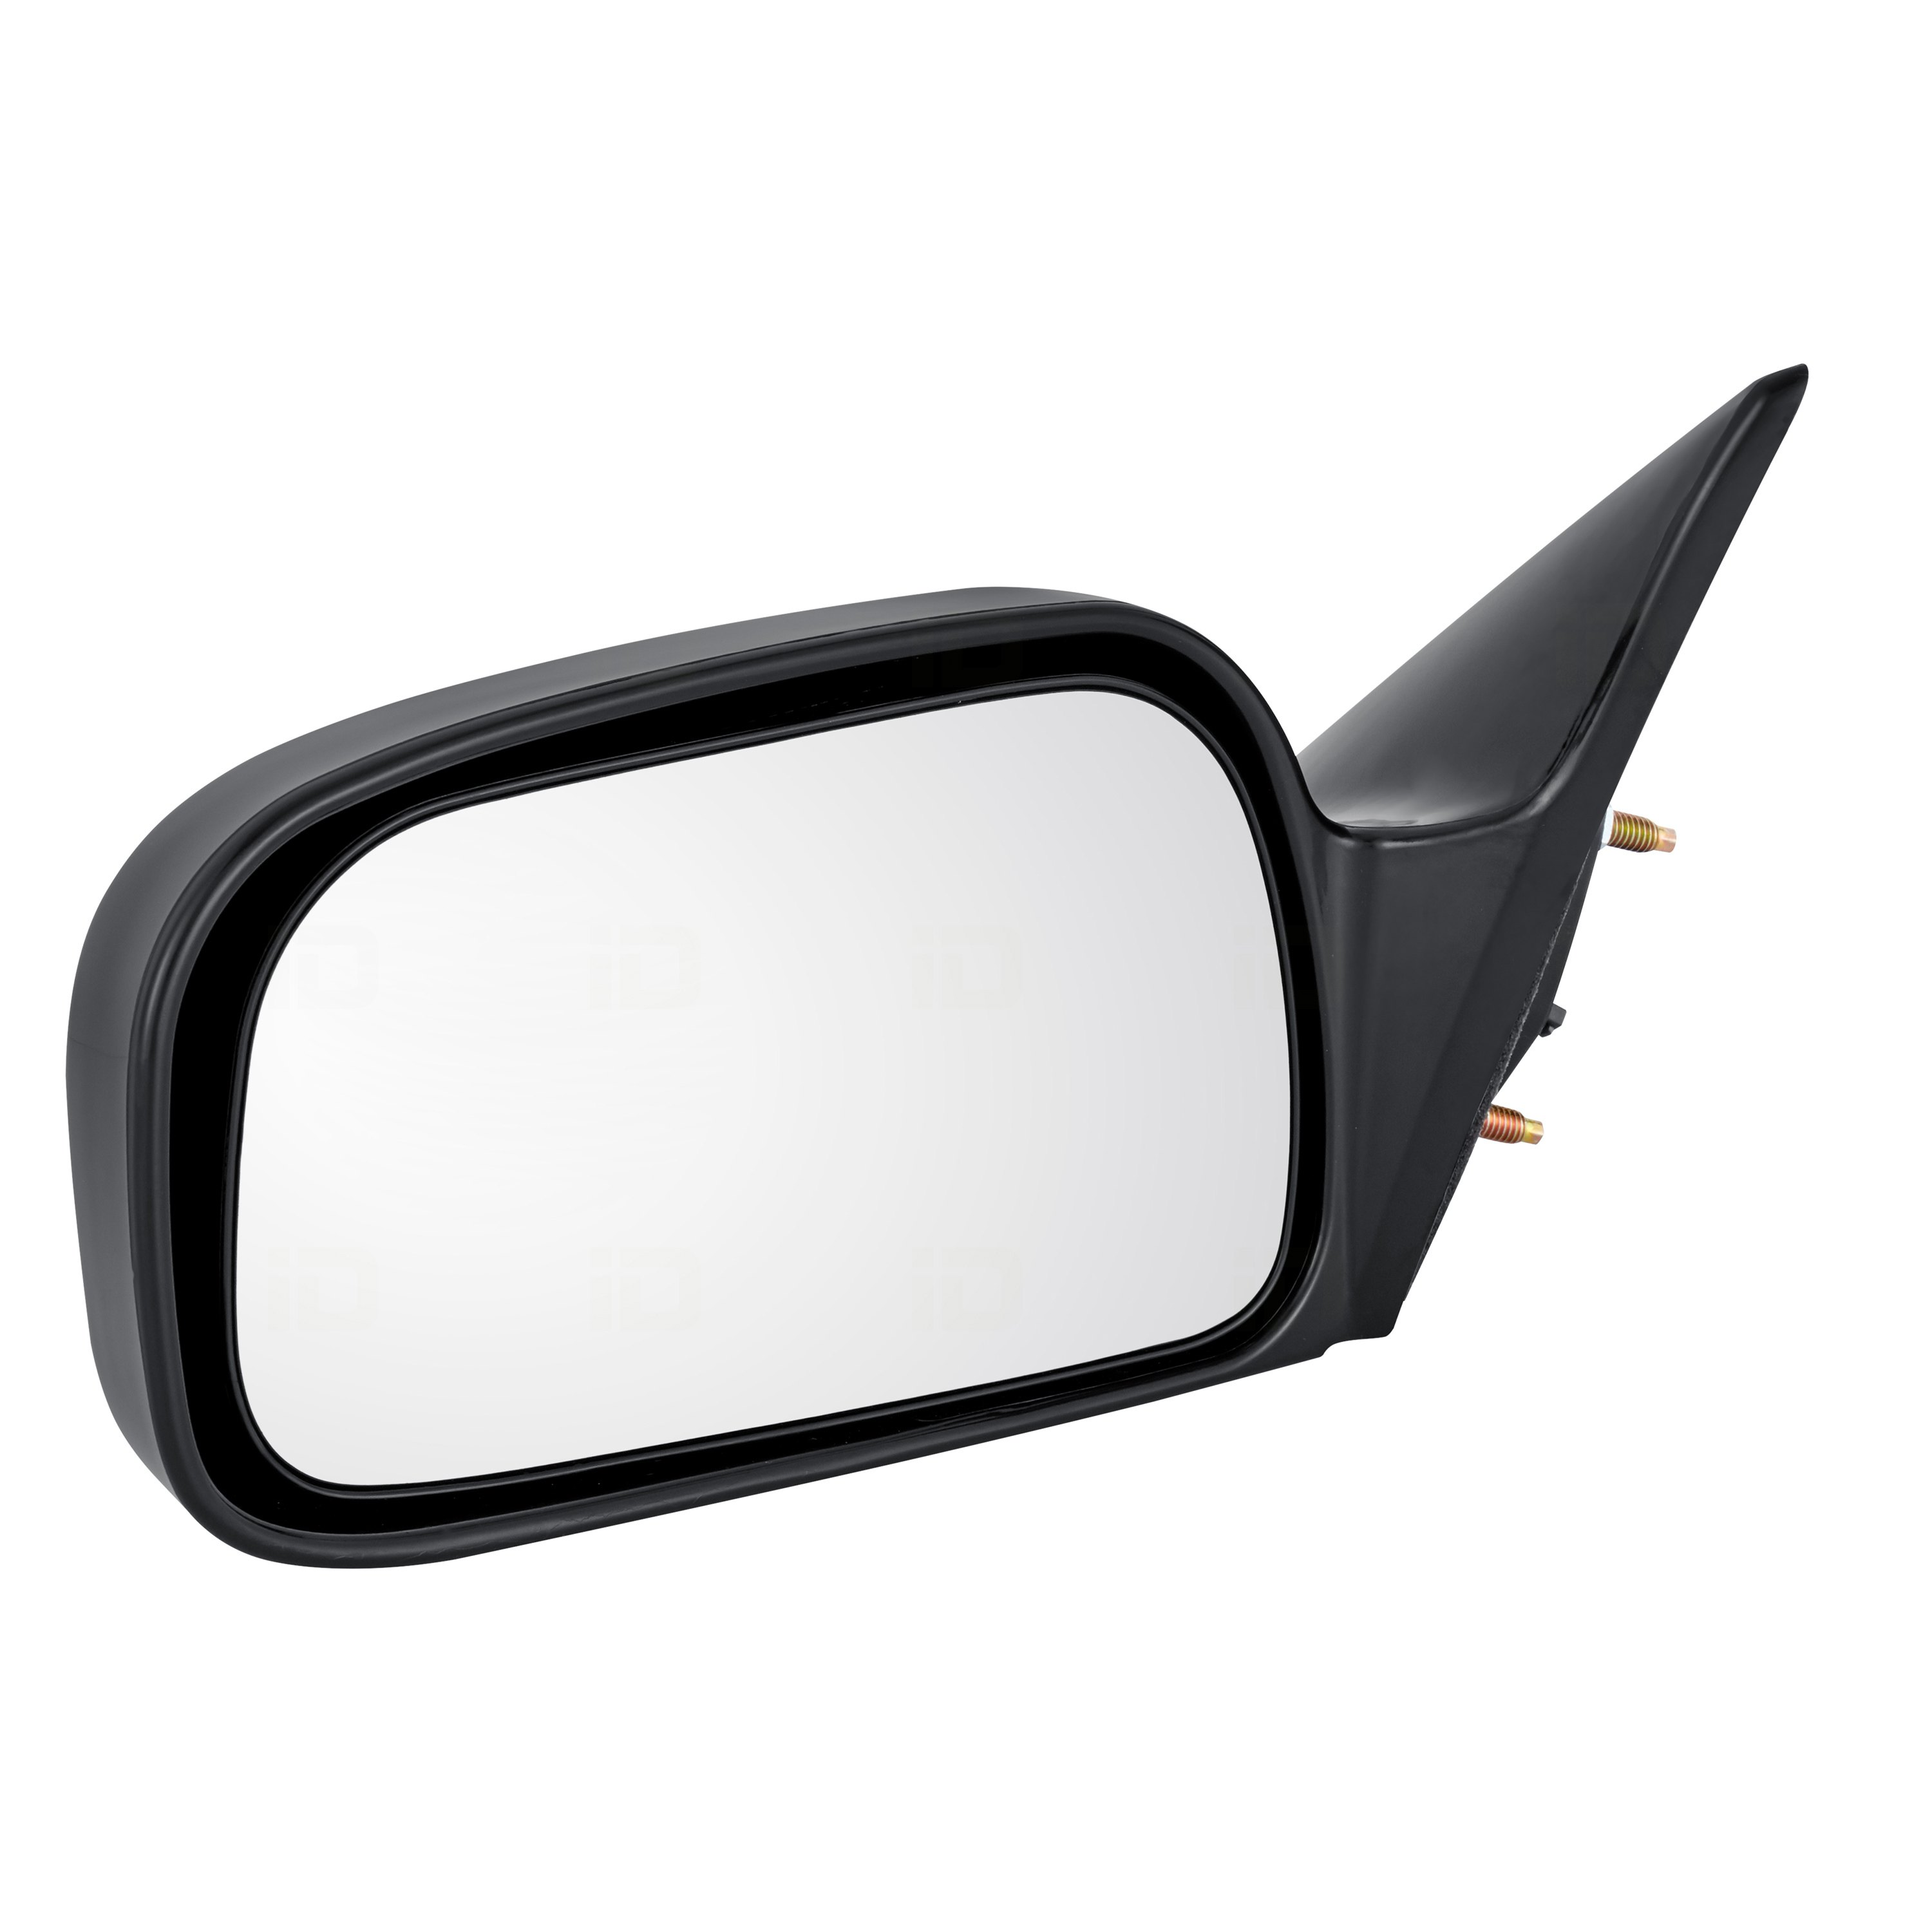 Genuine Toyota 87940-1E841-D1 Rear View Mirror Assembly